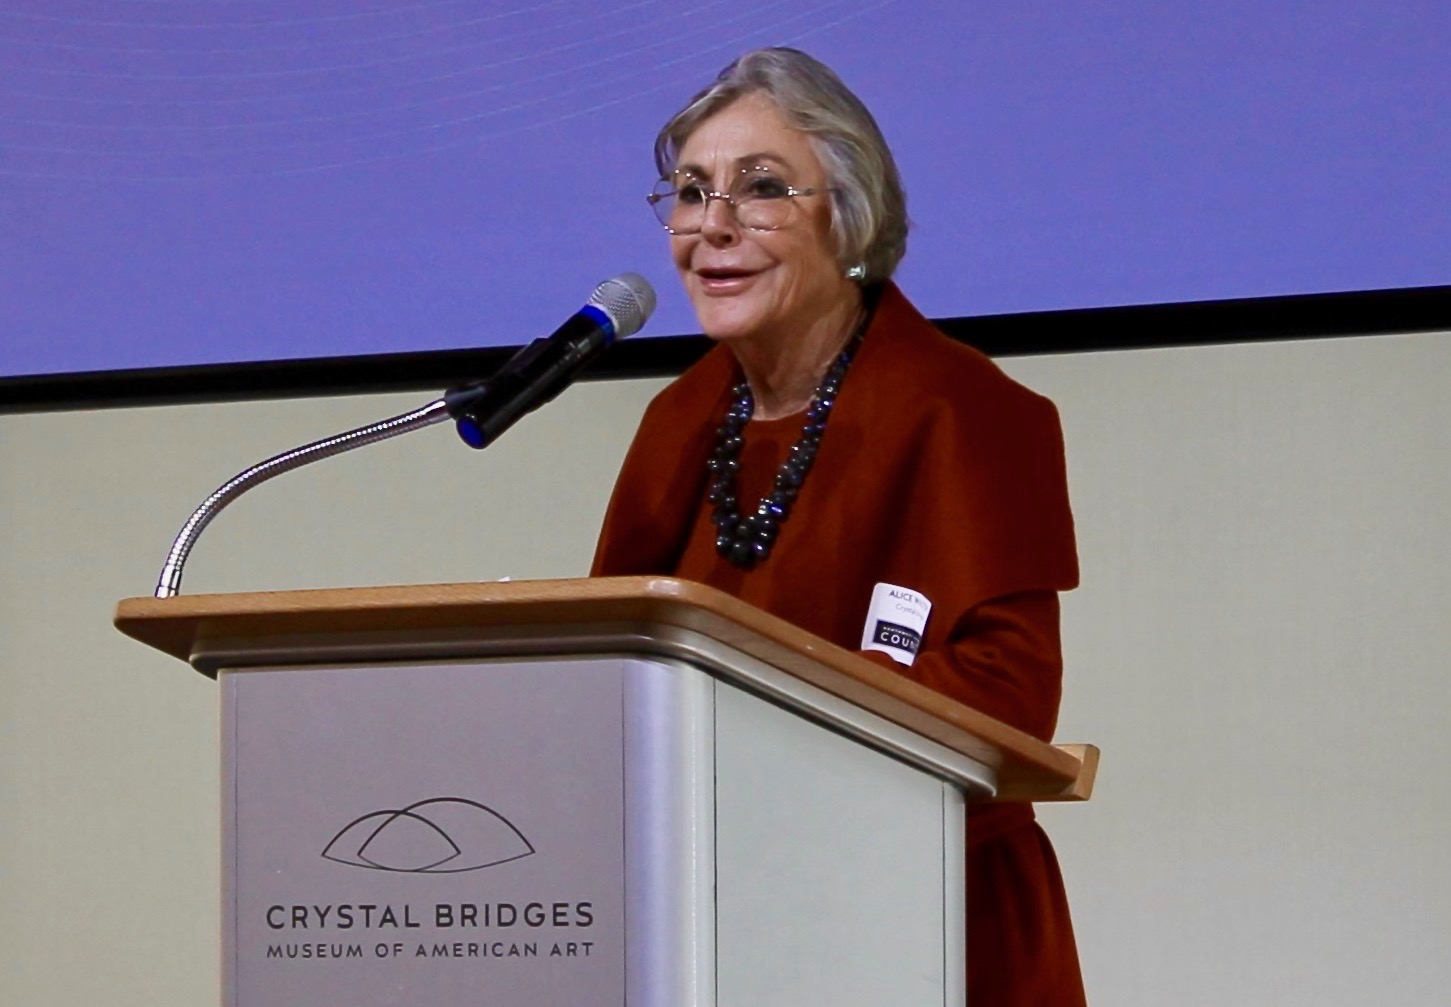 Alice Walton: New Institute to Address 'Broken' Health Care System